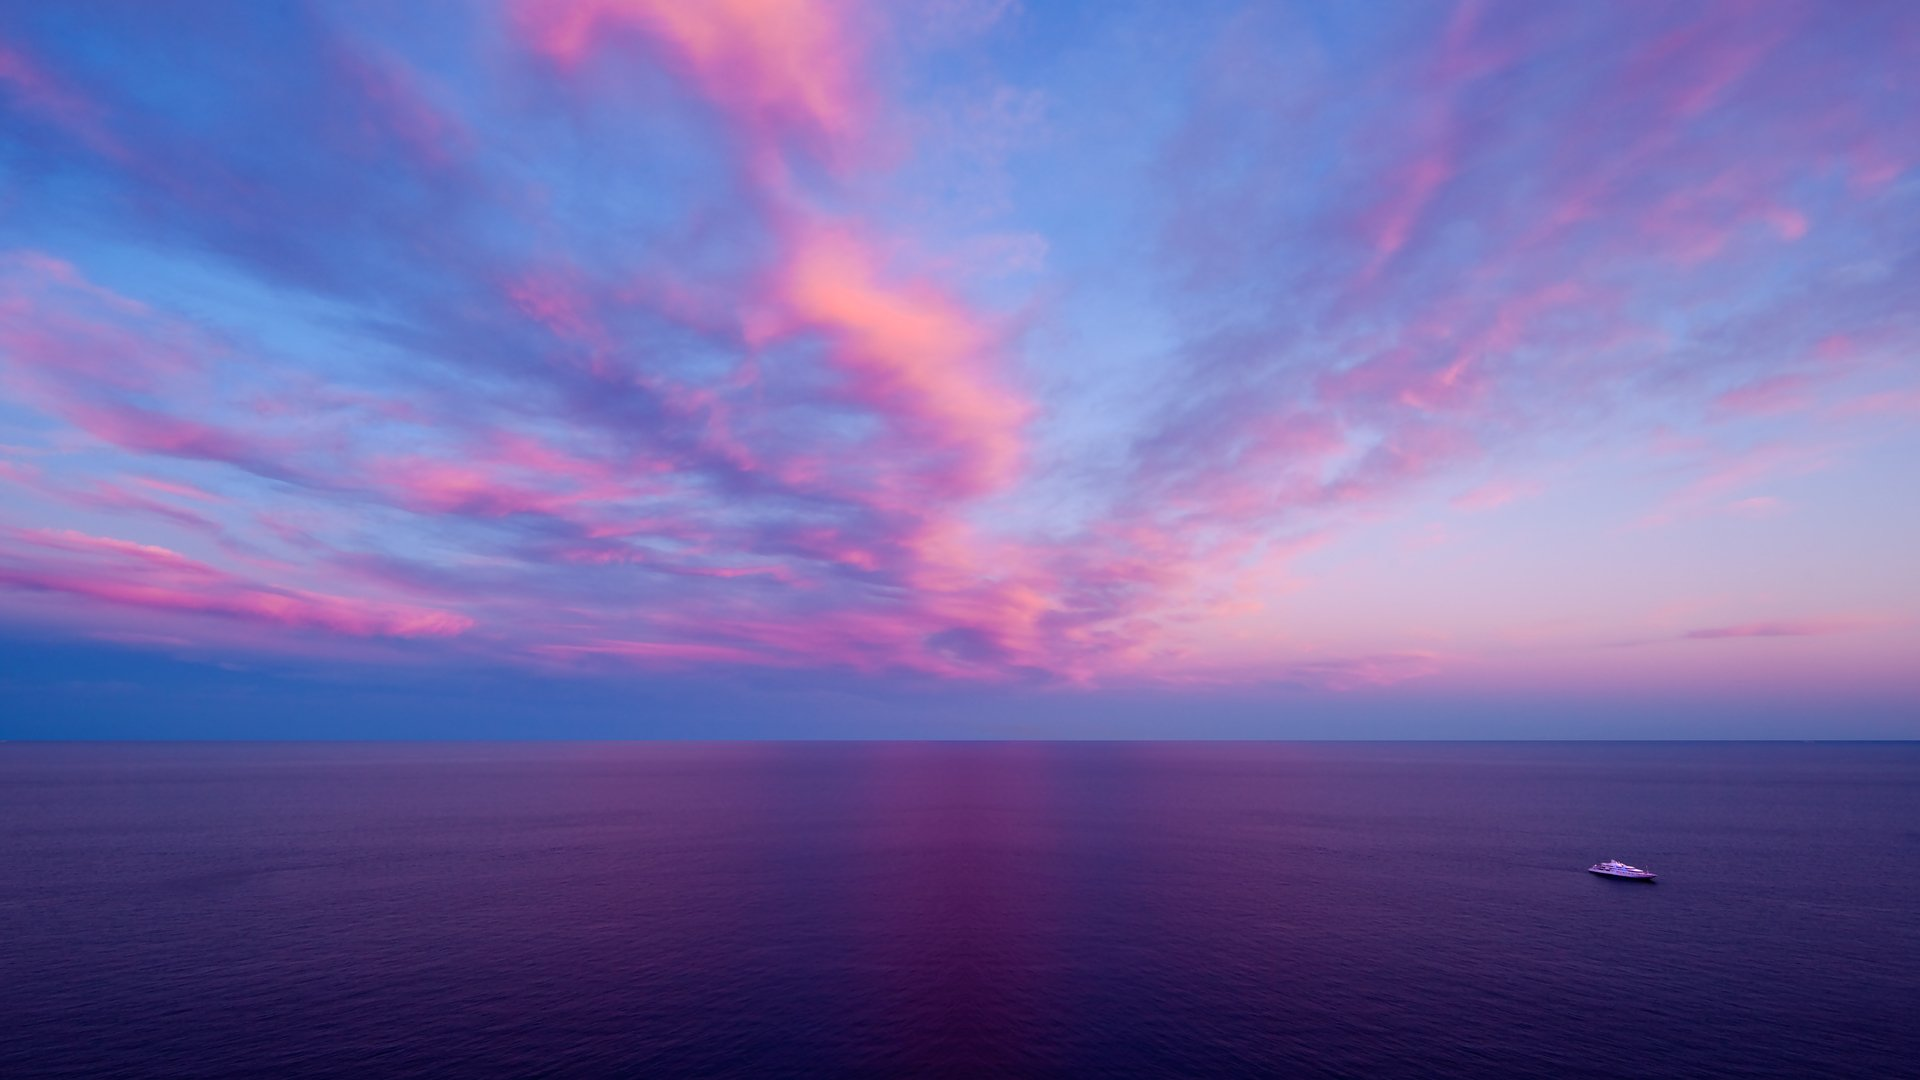 Pink Ocean Sunset Full HD Wallpaper And Background Image